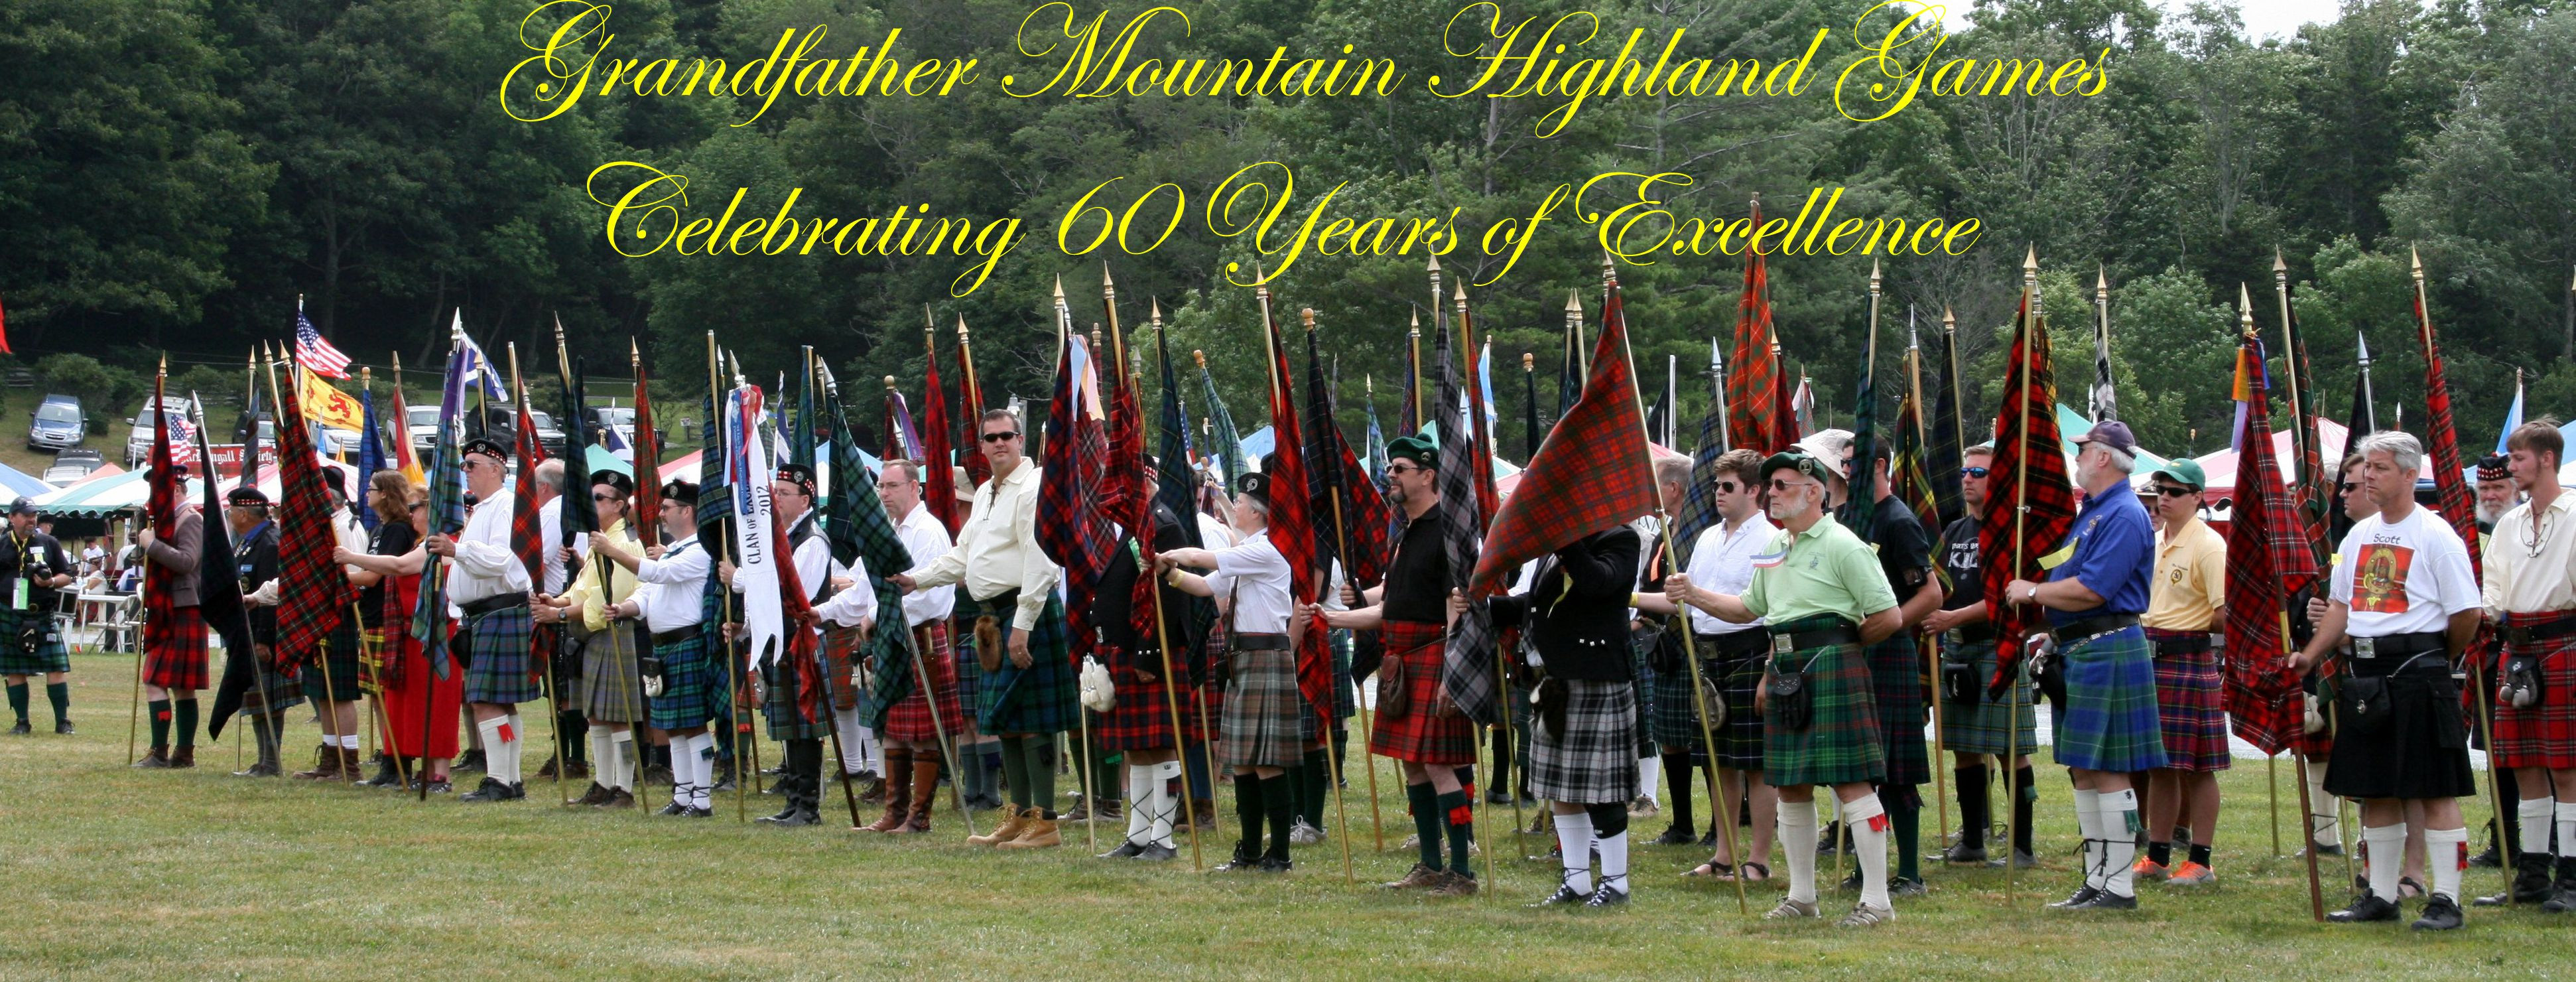 Grandfather Mountain Highland Games Grandfather mountain